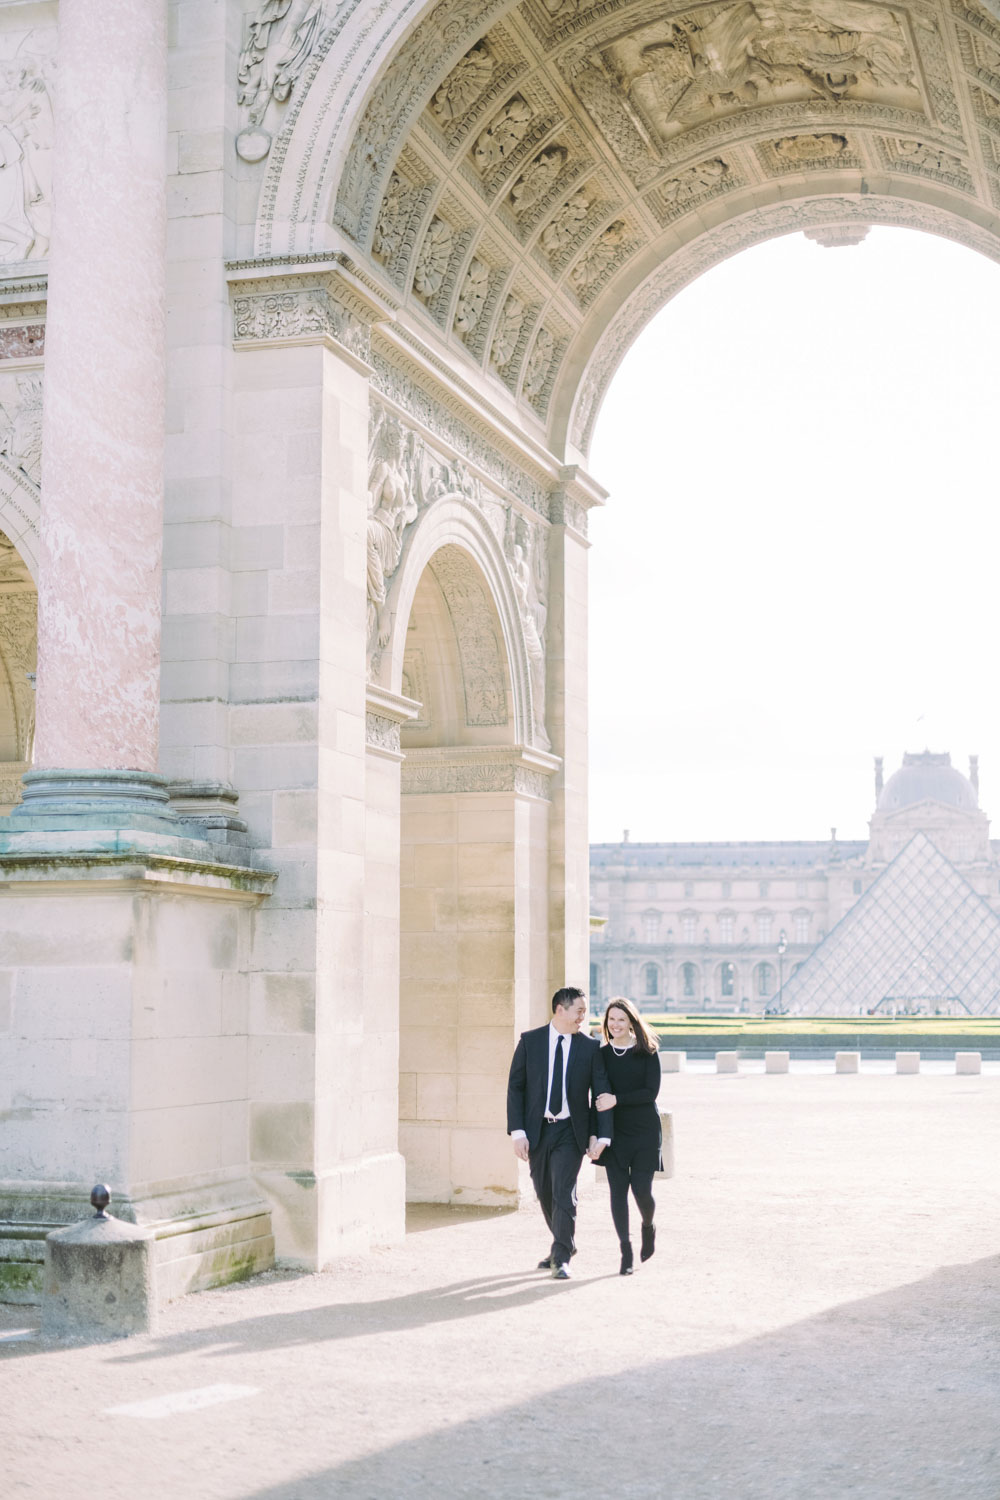 lovers are walking at the louvre museum in paris.